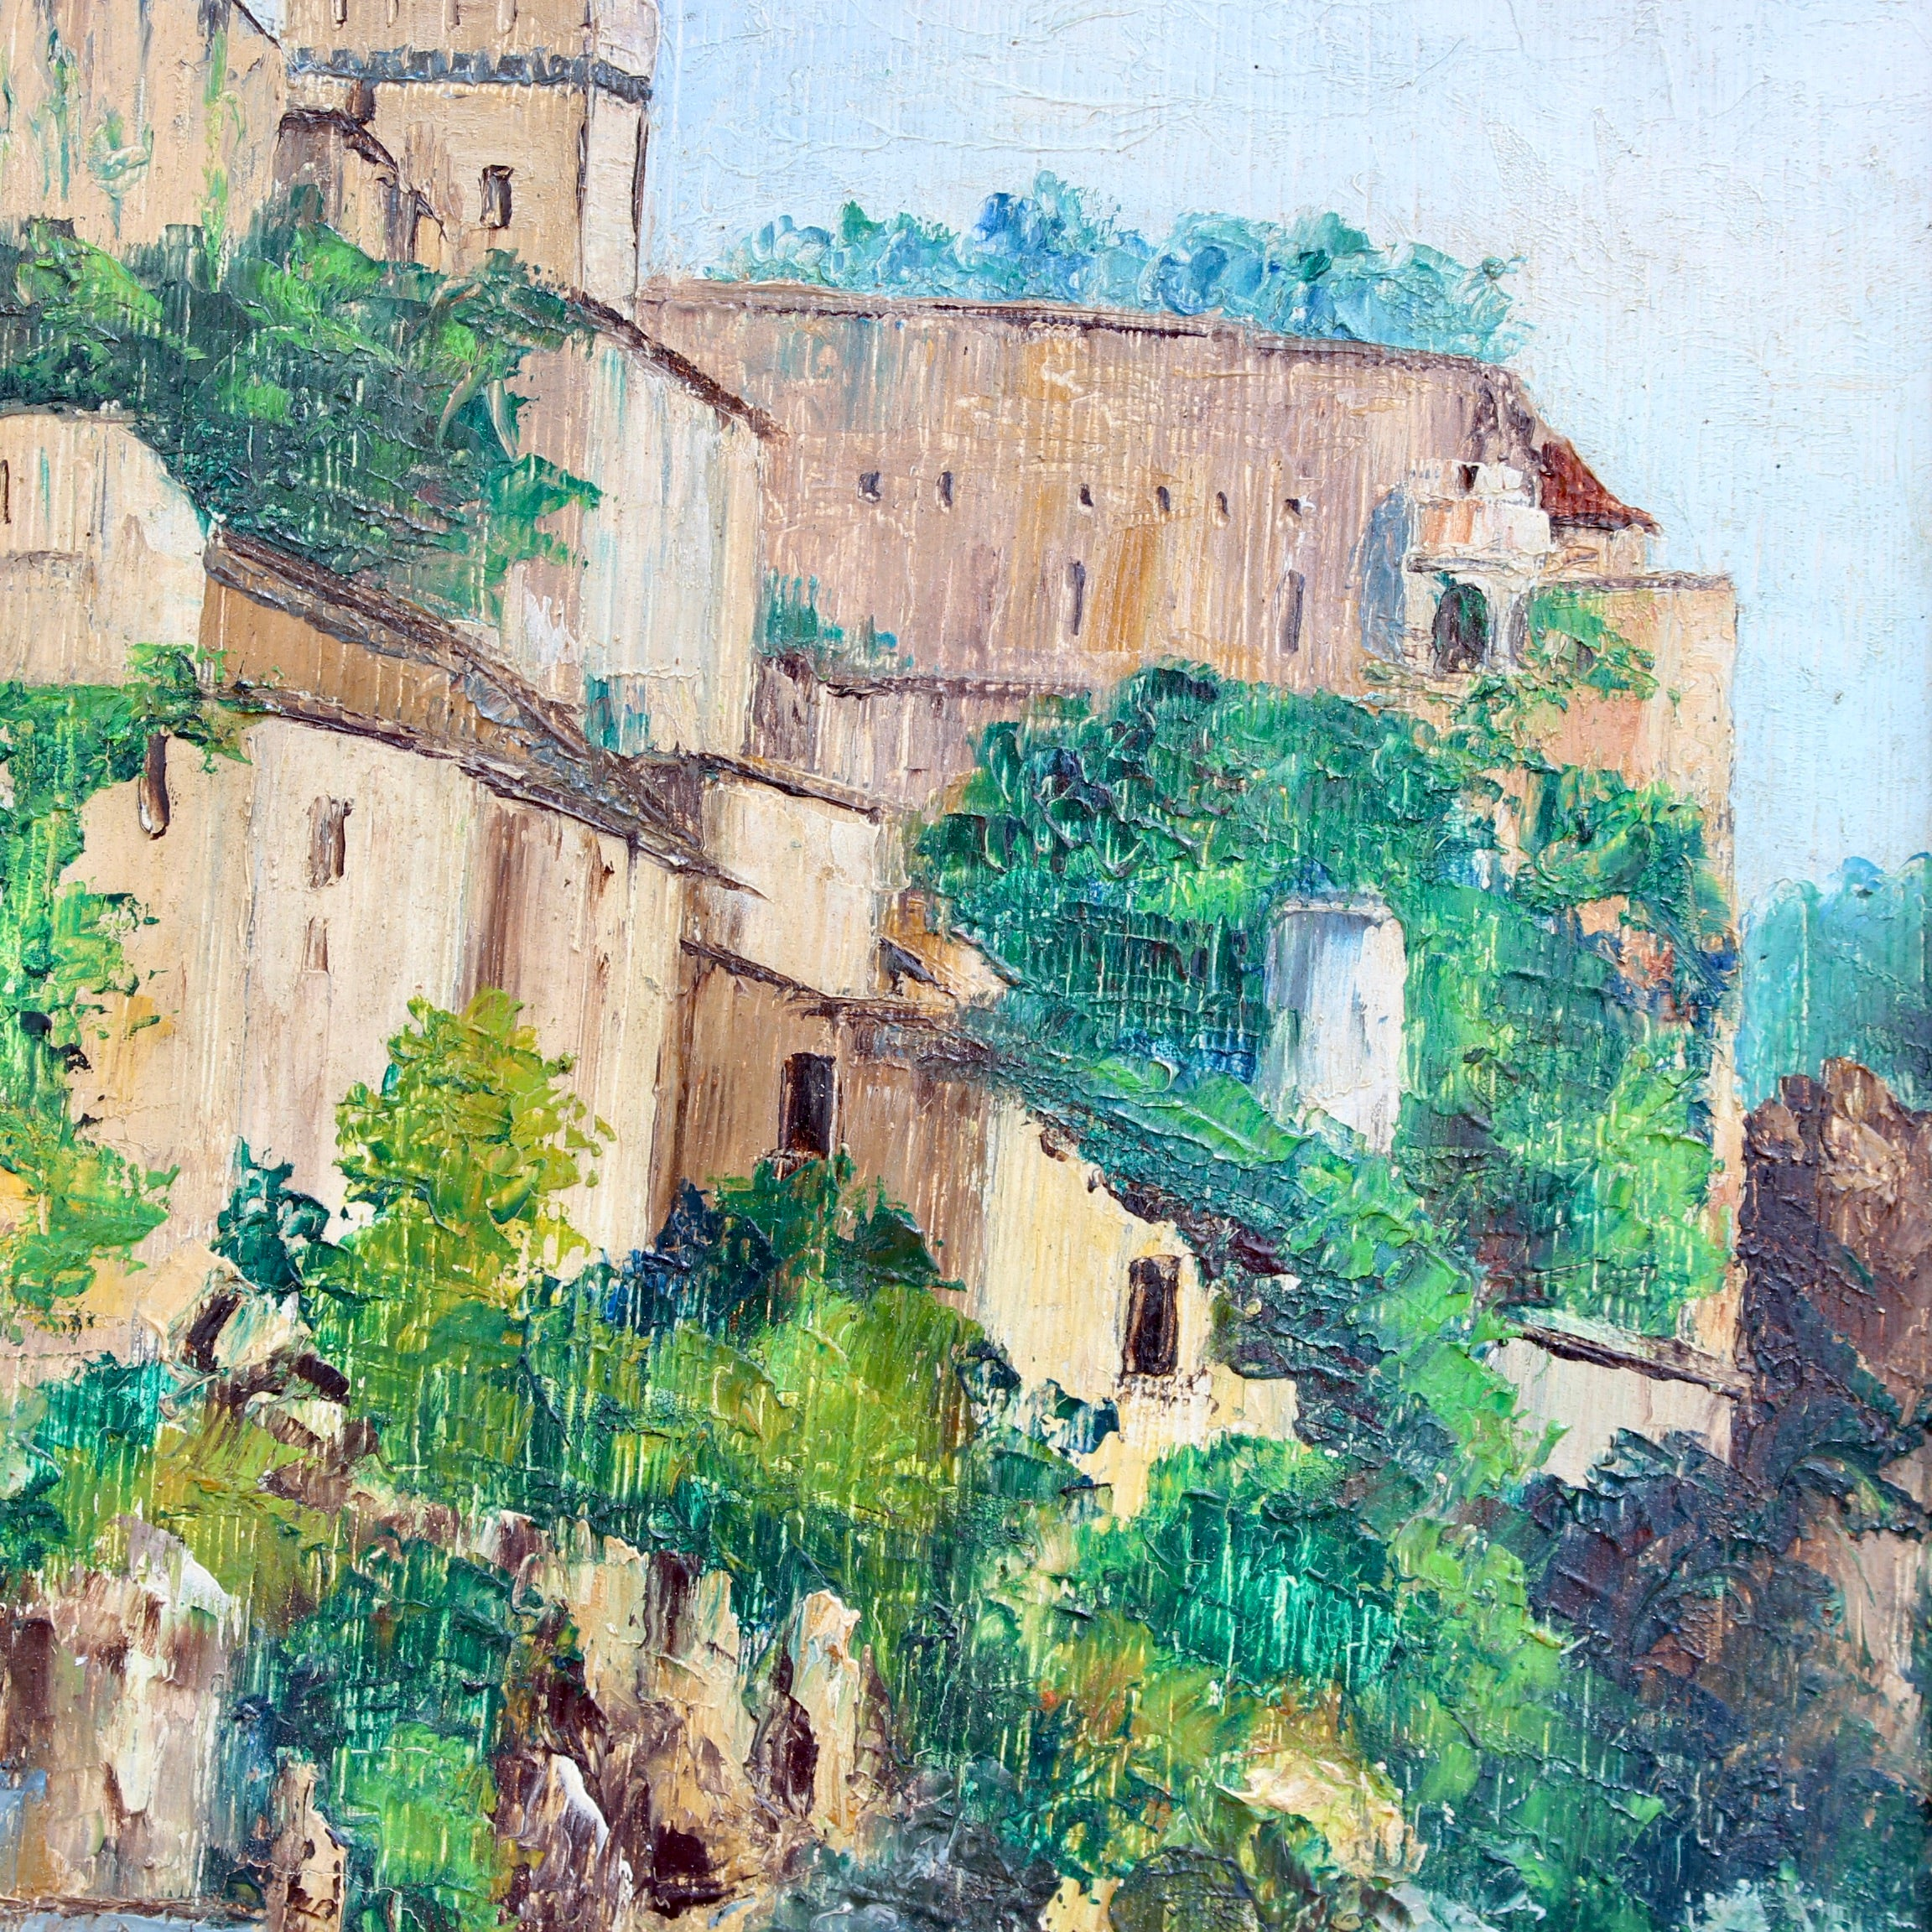 'The Chateau of Lourdes' by Maurice Martin (circa 1930s-50s)